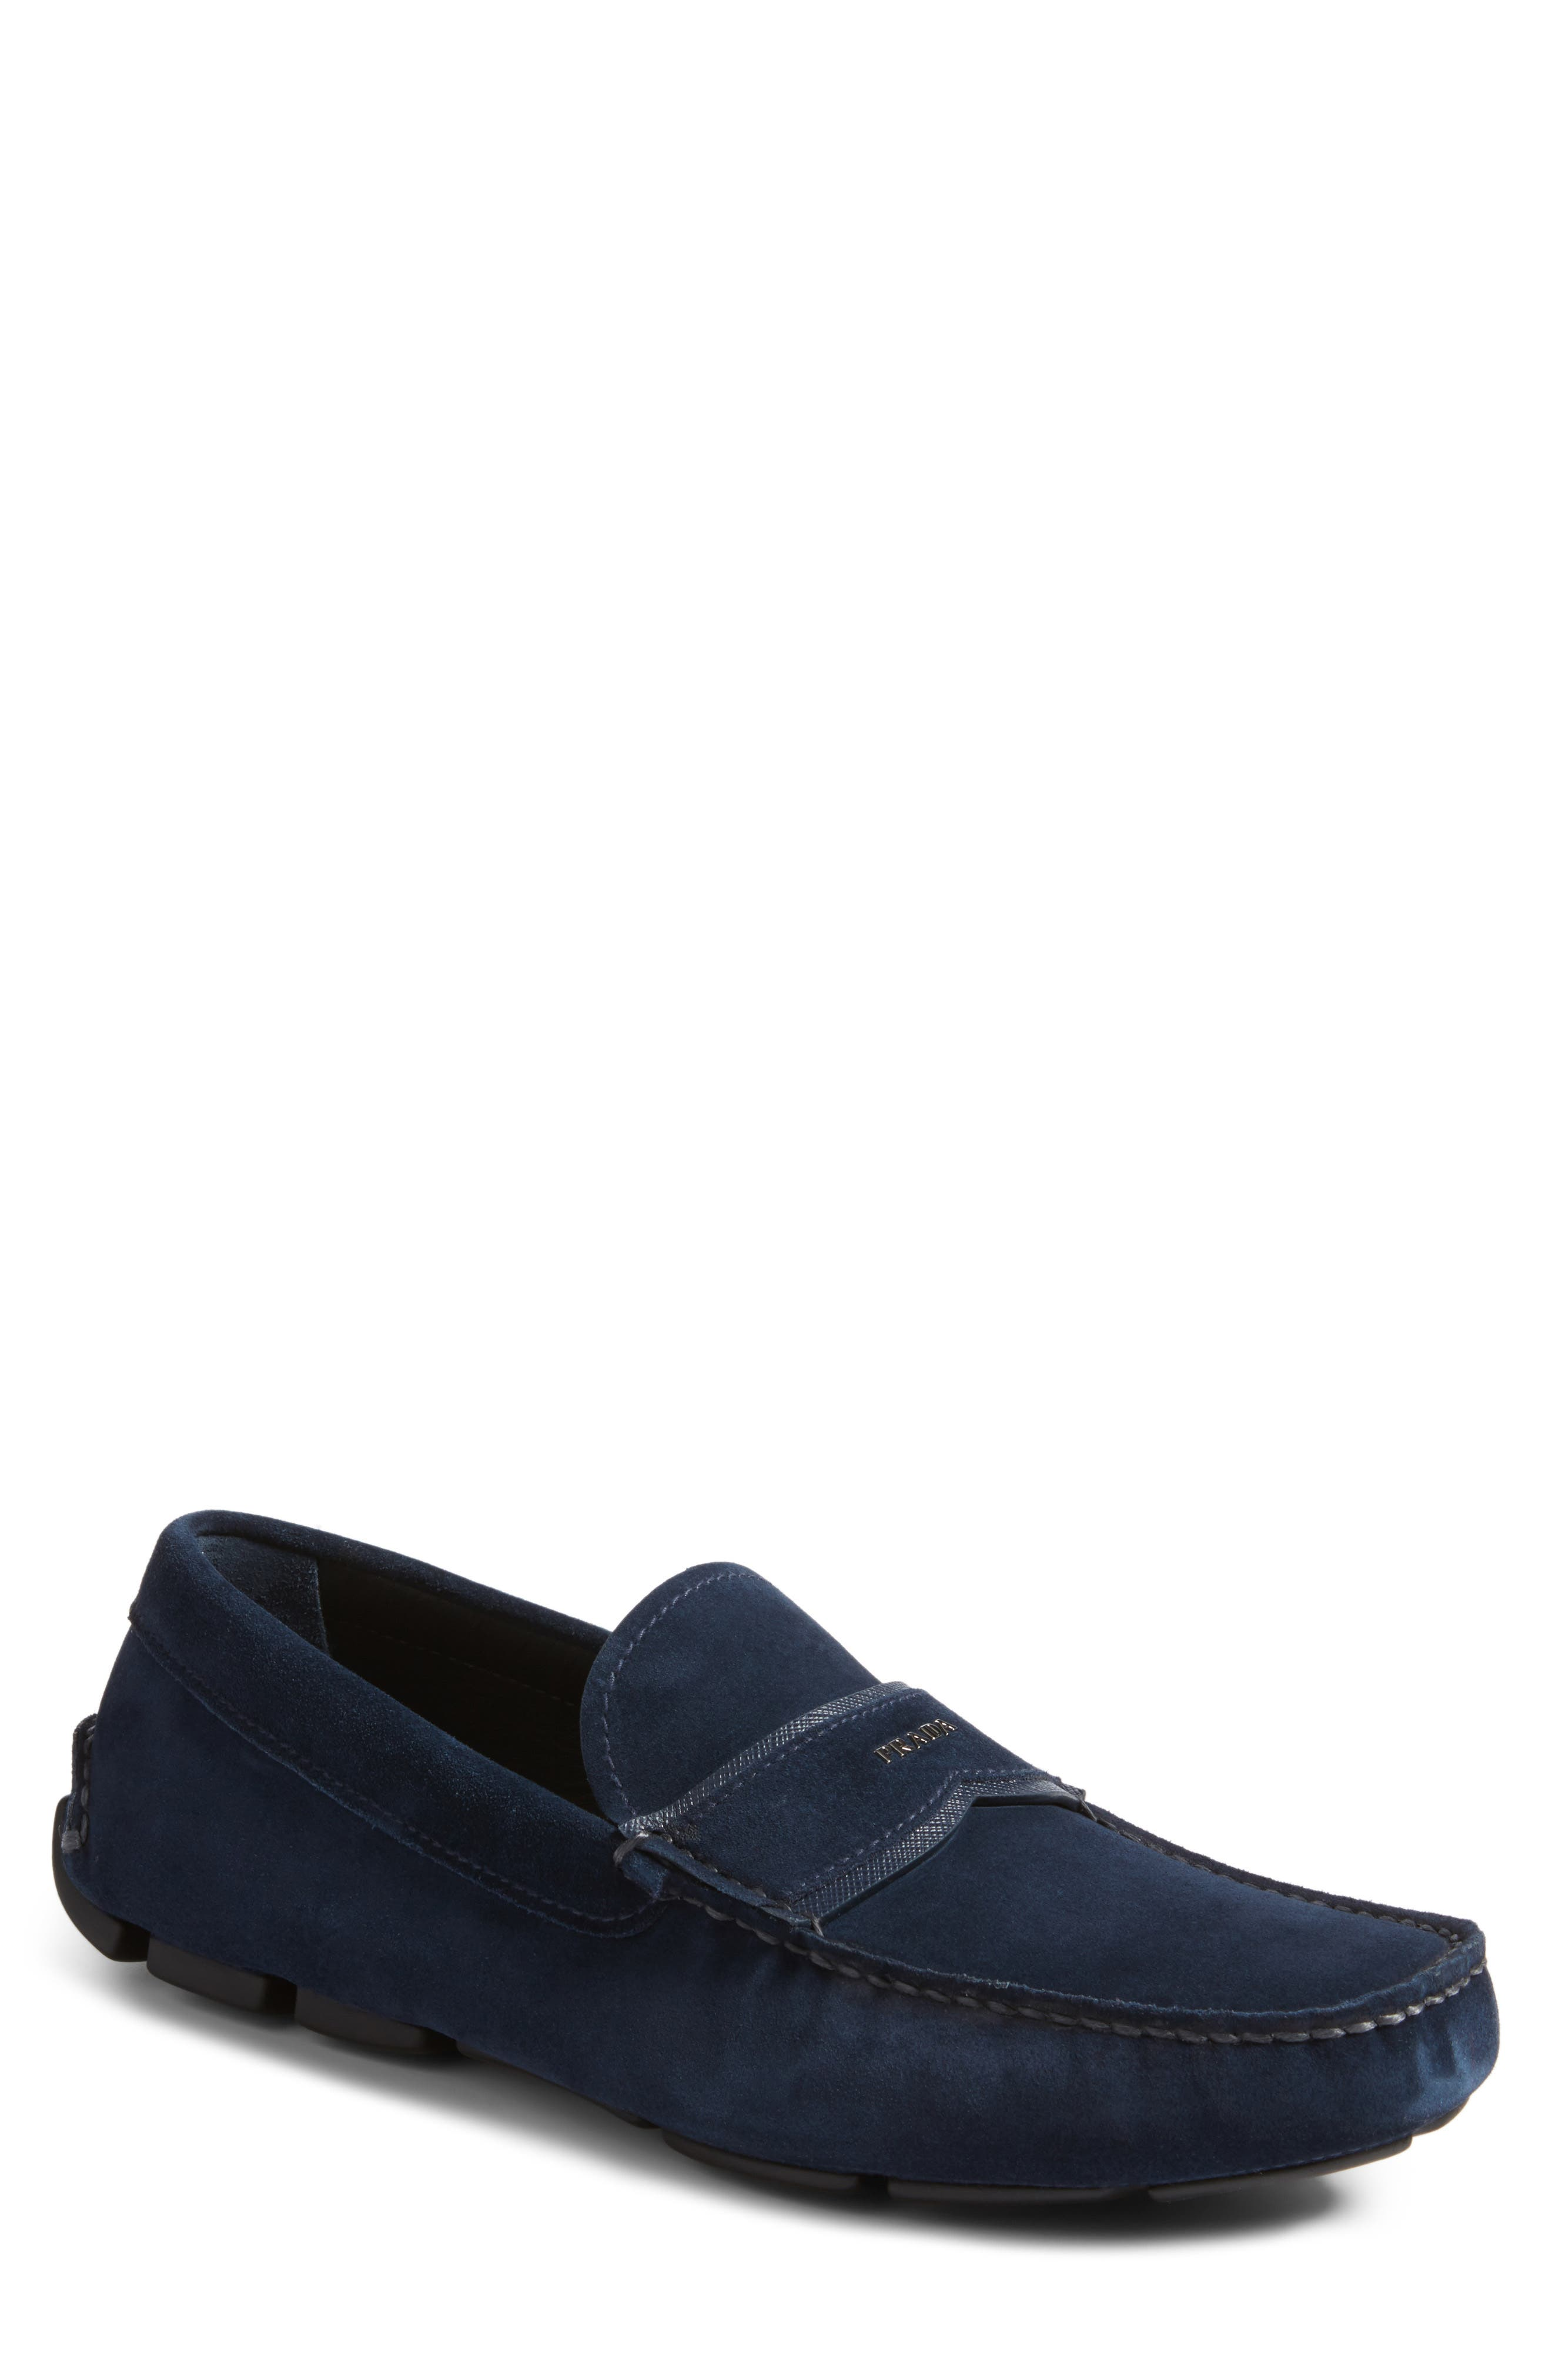 Driving Shoe,                             Main thumbnail 1, color,                             OLTREMARE